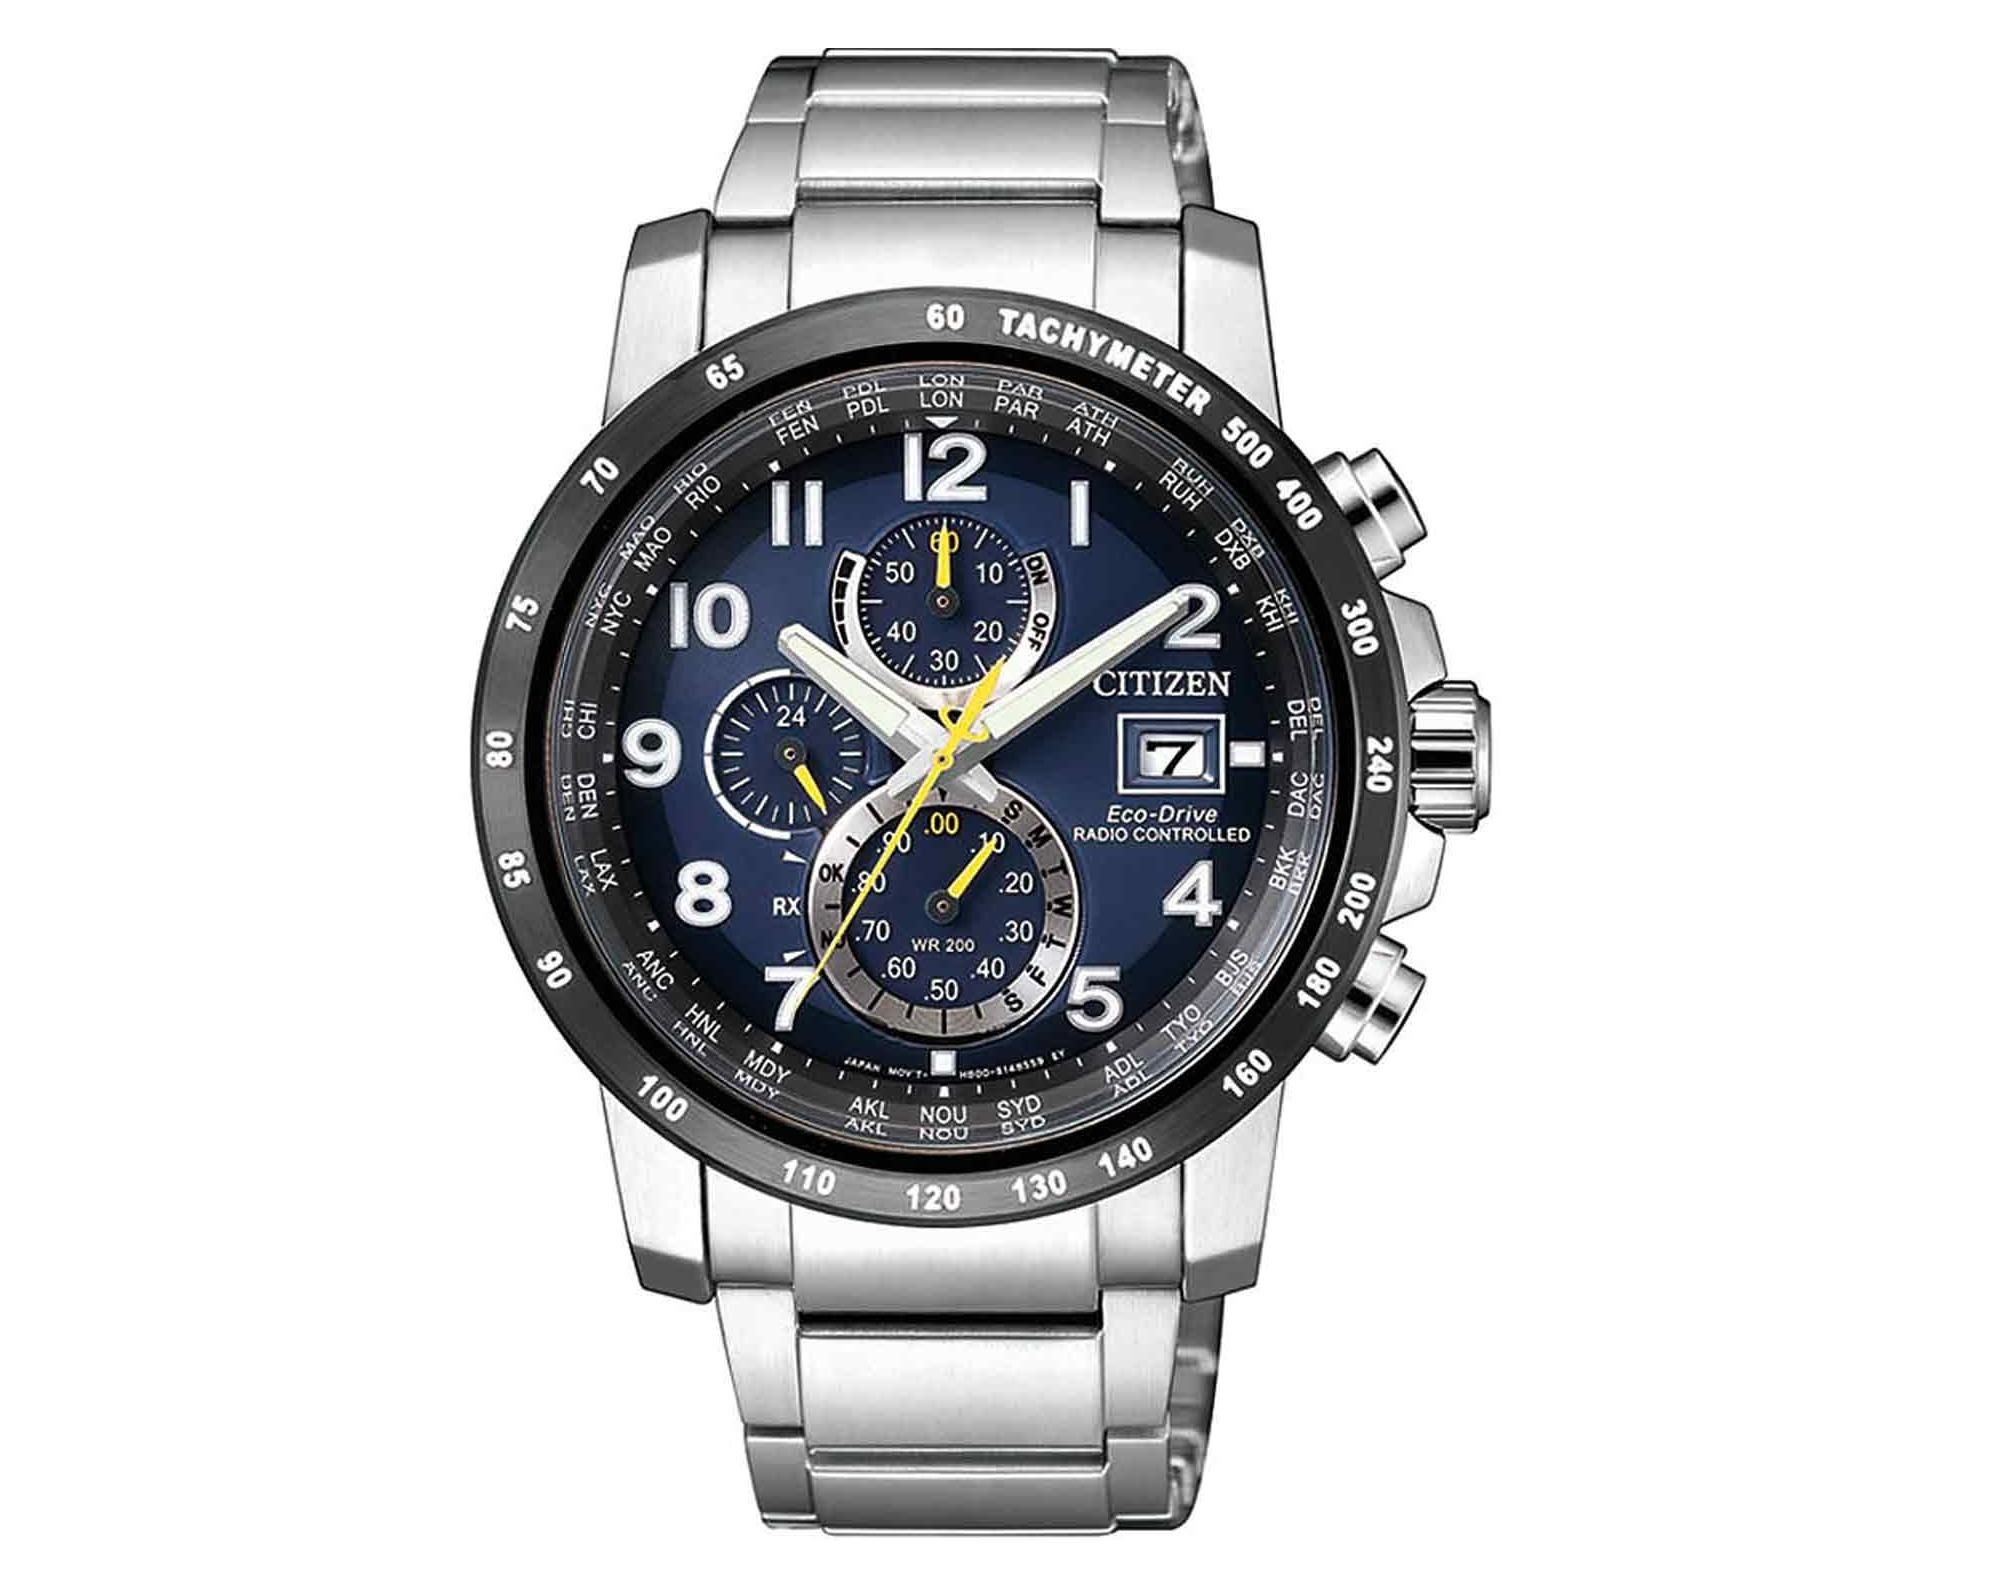 CITIZEN RadioControlled Chrono Tone Stainless Steel Bracelet AT8124 ... 53c7e79dc1d